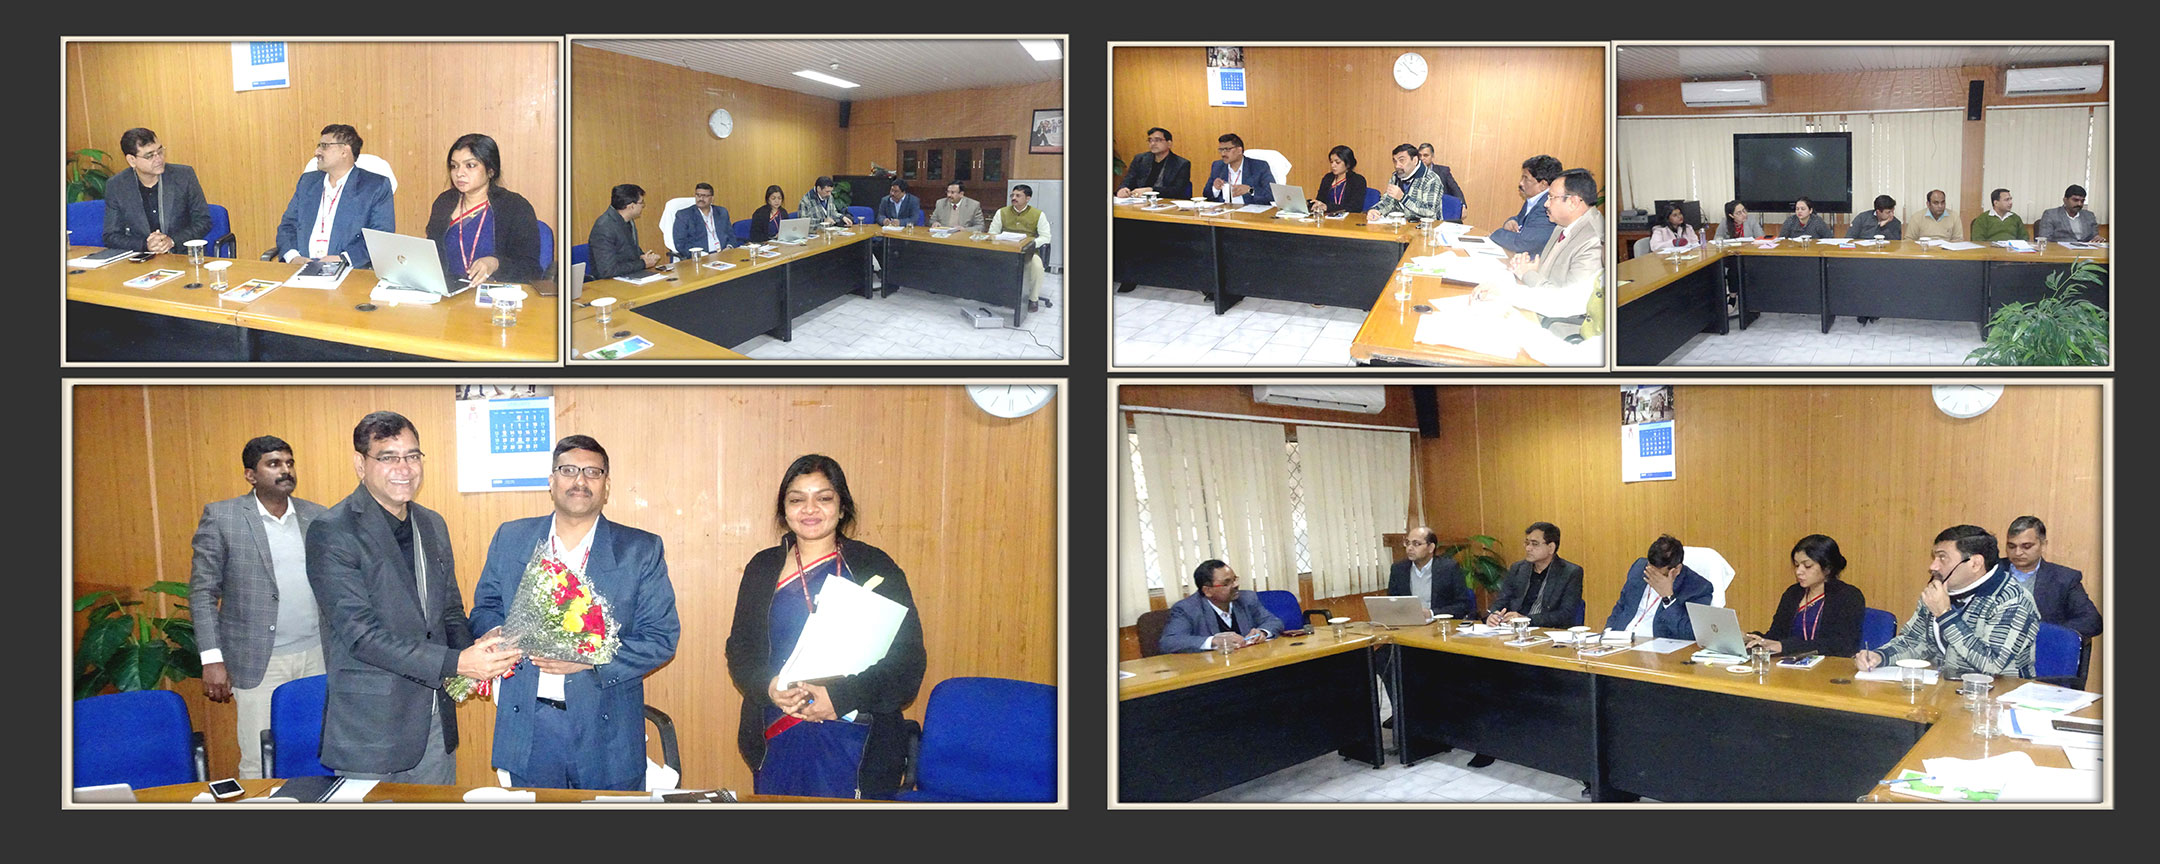 Hon. Secretary, Ministry of Social Justice & Empowerment, visits NISD office in RK Puram, Jan 10